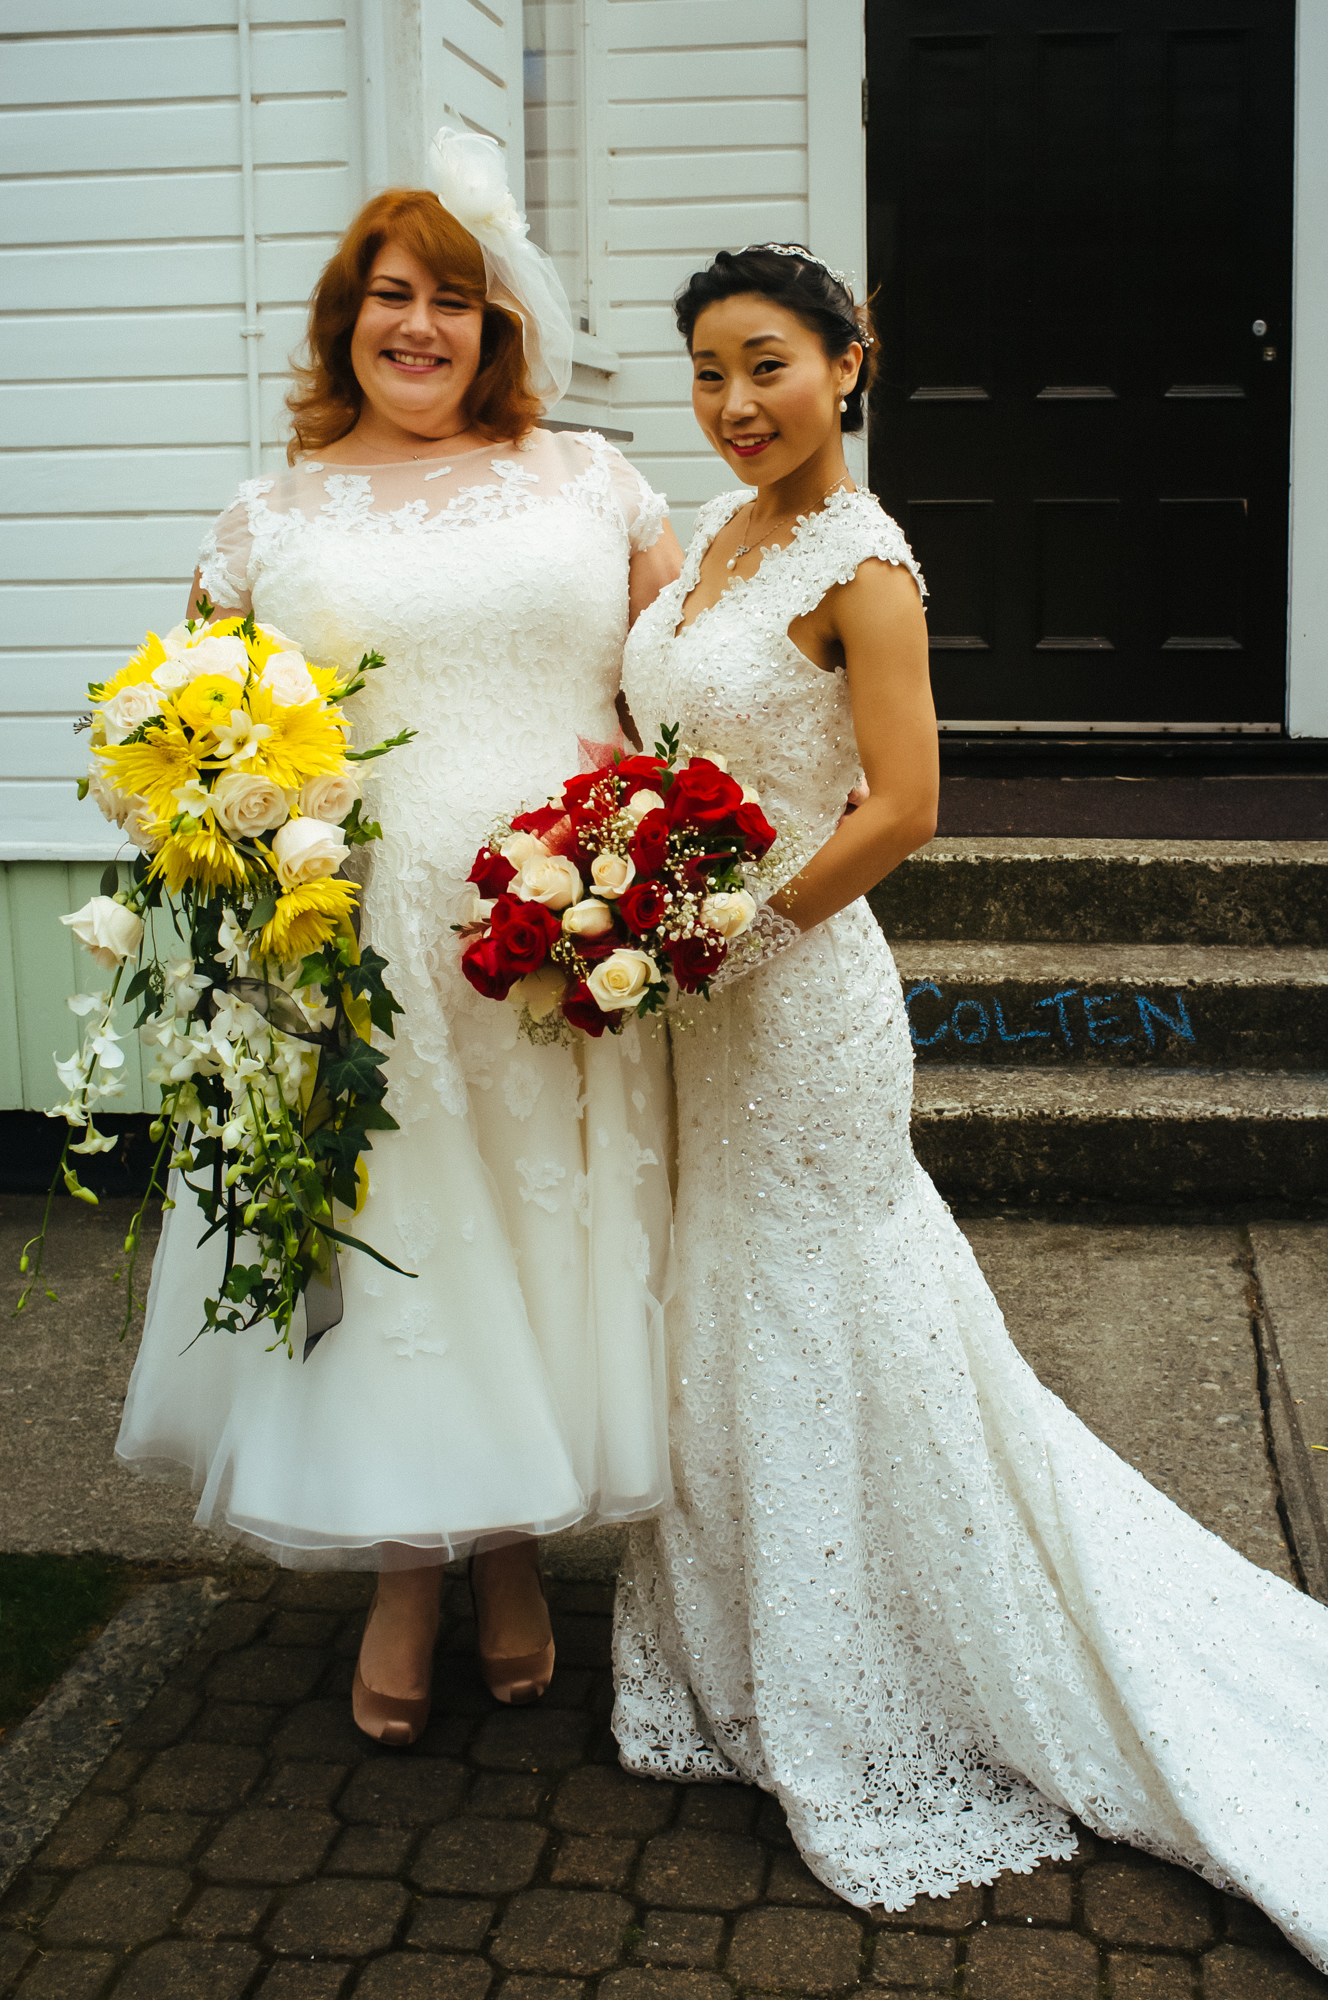 2015 8-15 Wedding Rob Karen-1105.jpg